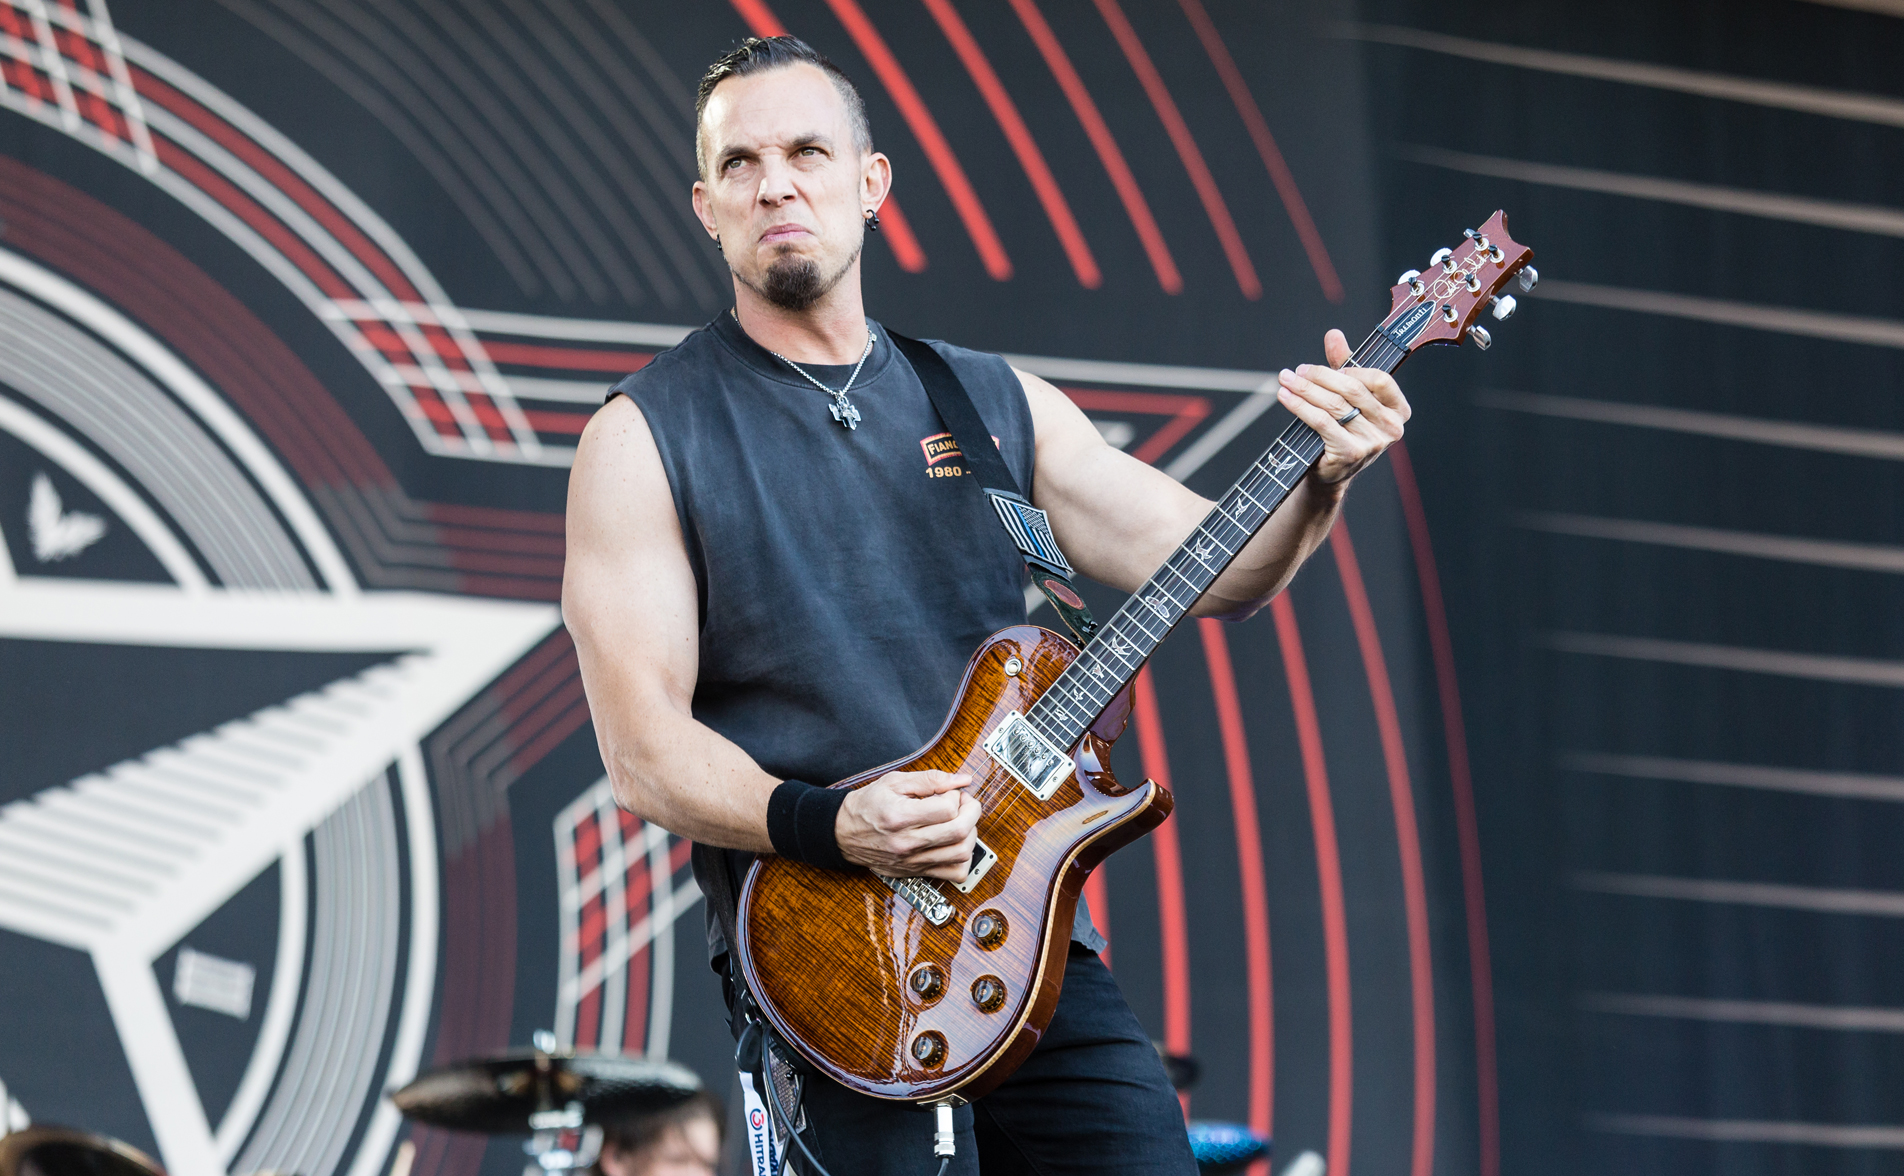 Mark Tremonti Guitar Compare